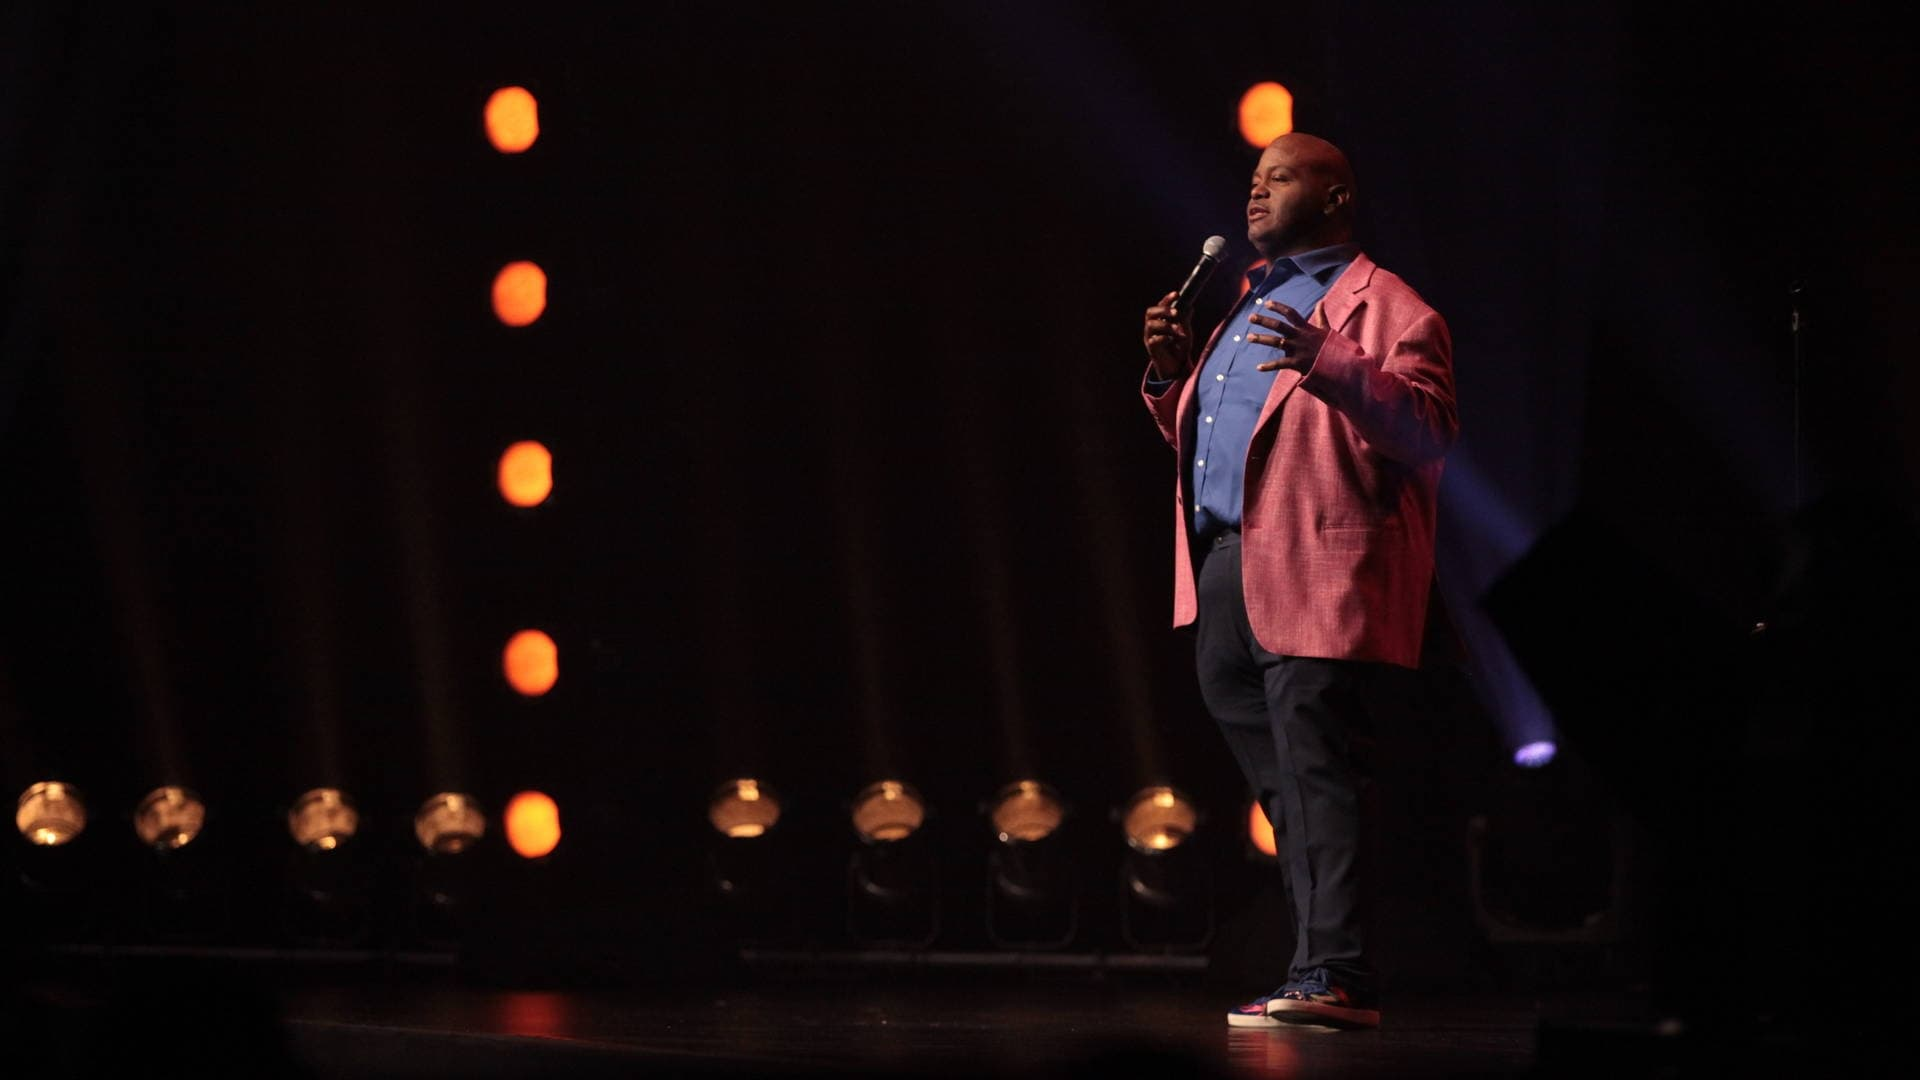 Lavell Crawford Home For The Holidays 123movies